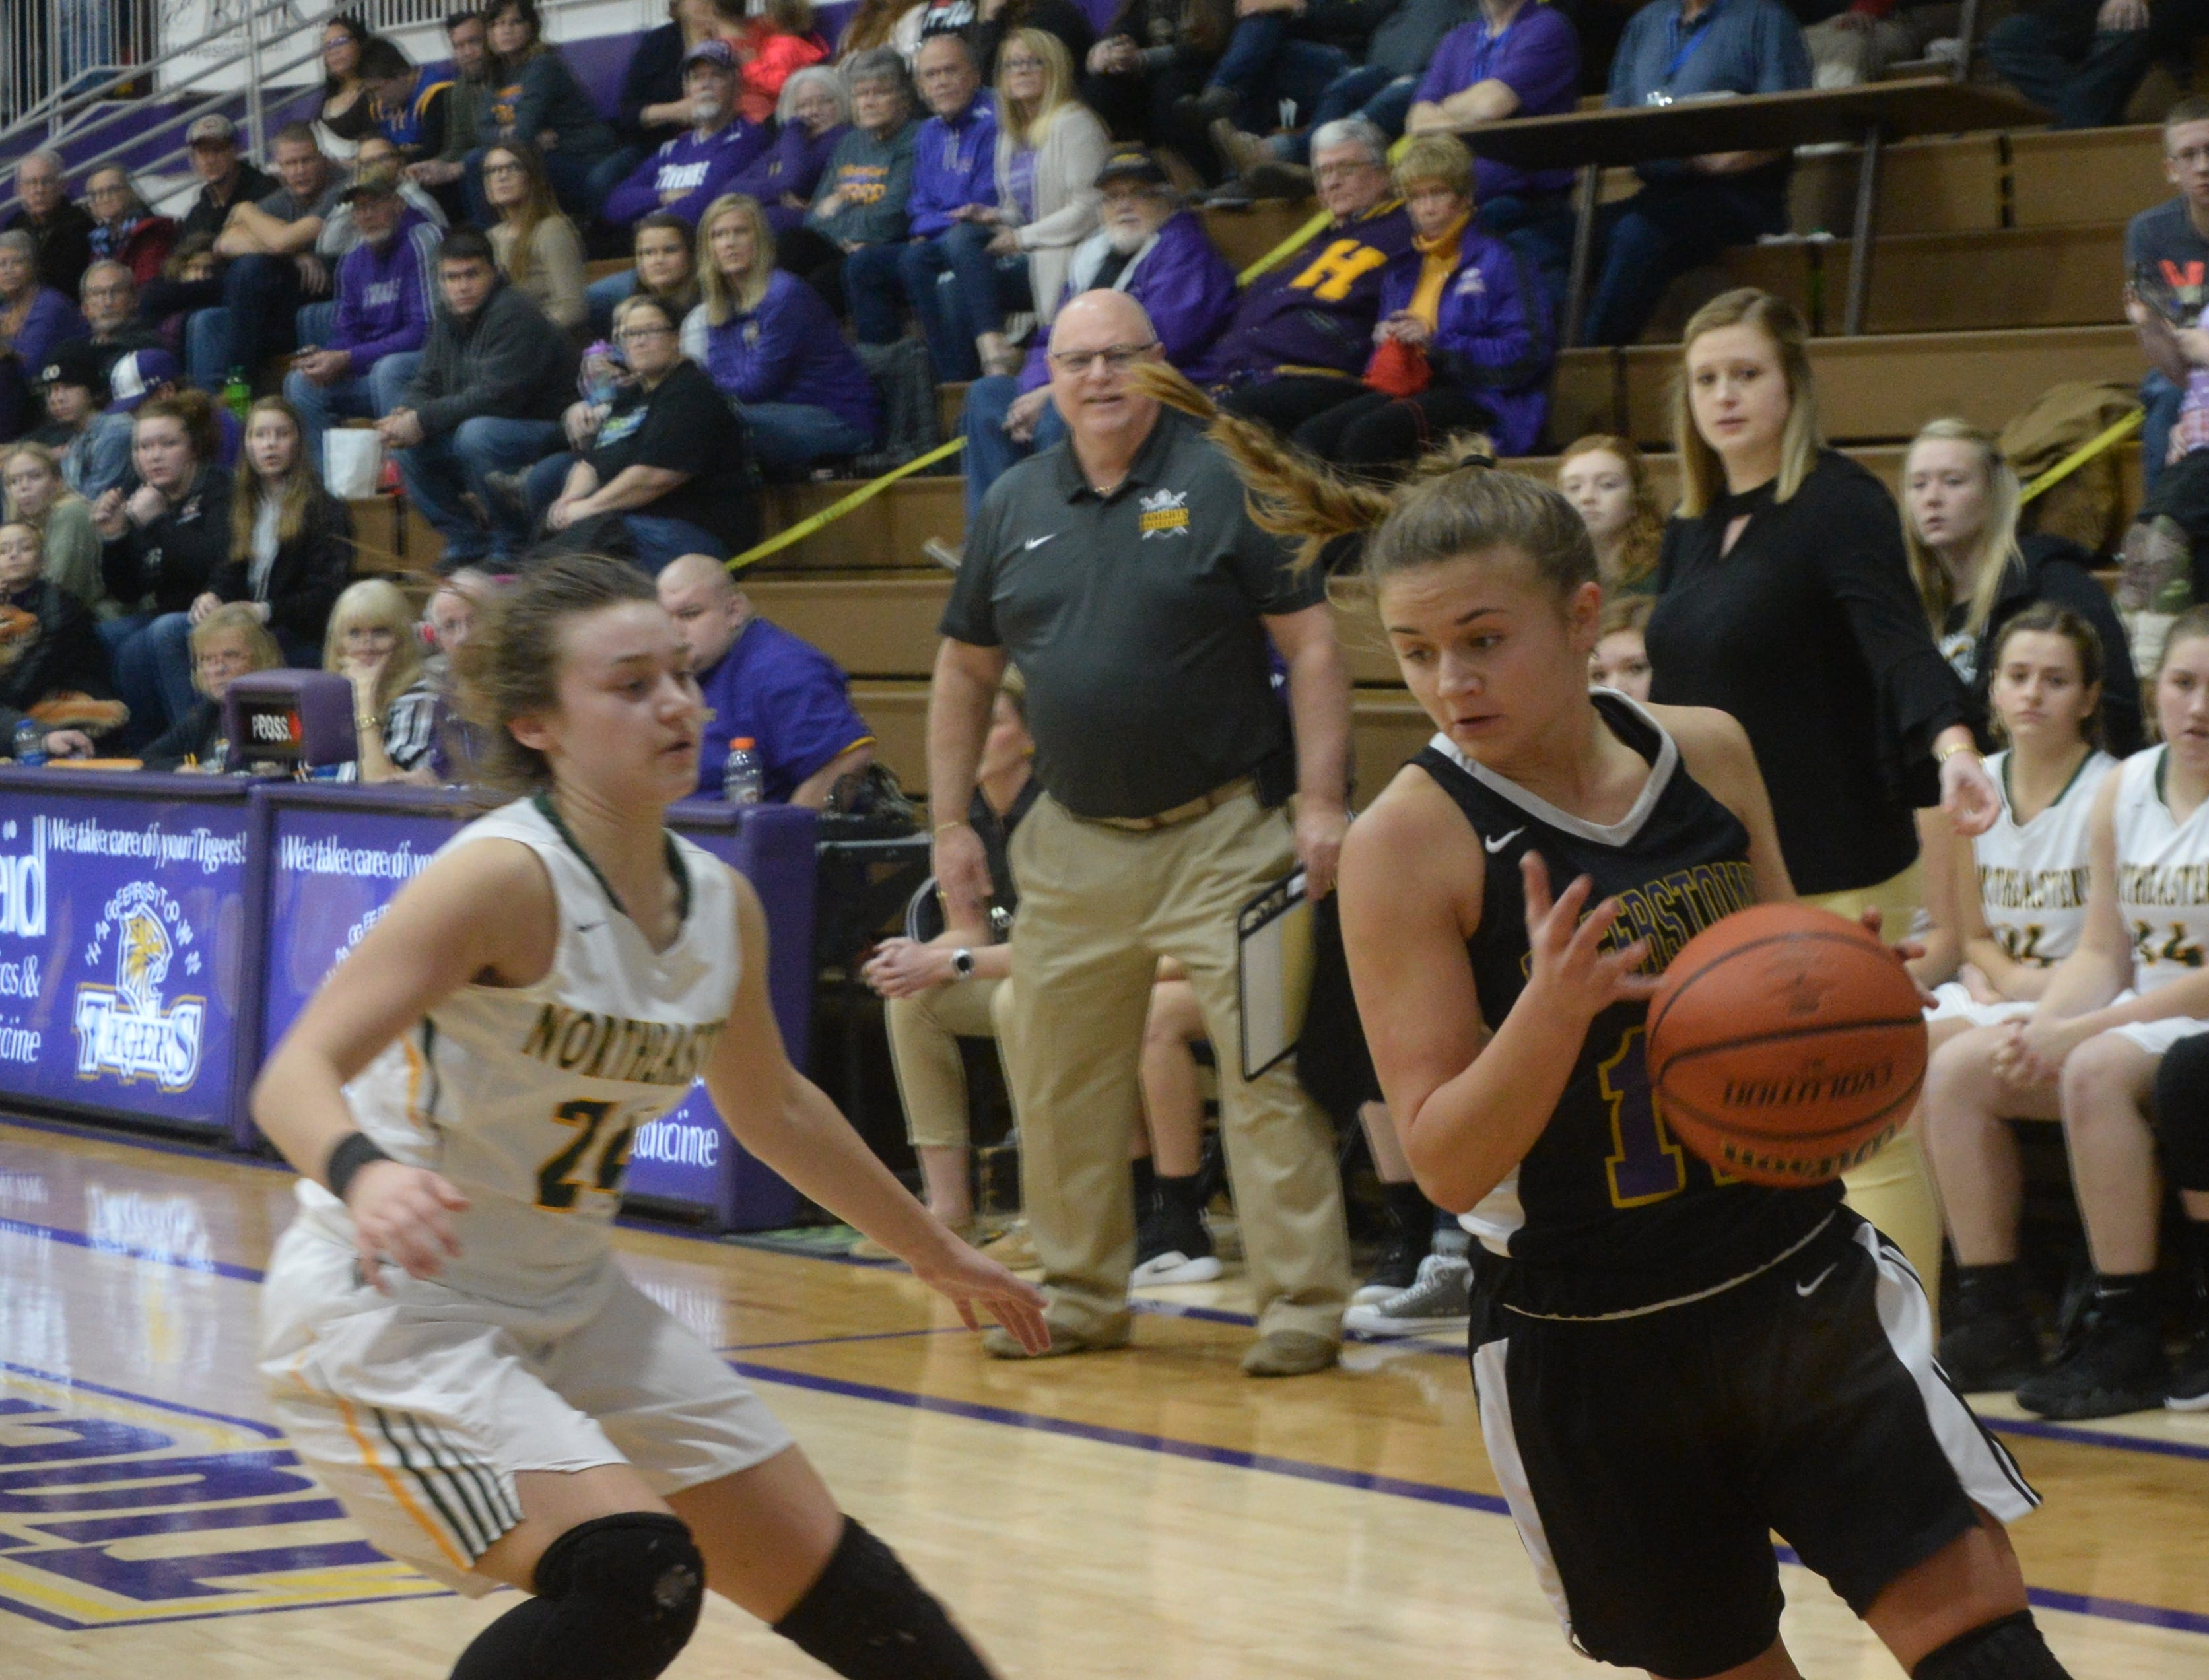 Hagerstown's Camryn Bradway (11) moves the ball against Northeastern's Jenna McFarland (24) during the Wayne County girls basketball championship at Hagerstown Saturday, Jan. 5, 2019. Hagerstown defeated Northeastern 37-35 to win the girls' title, and Northeastern beat Hagerstown 60-49 in the boys championship.